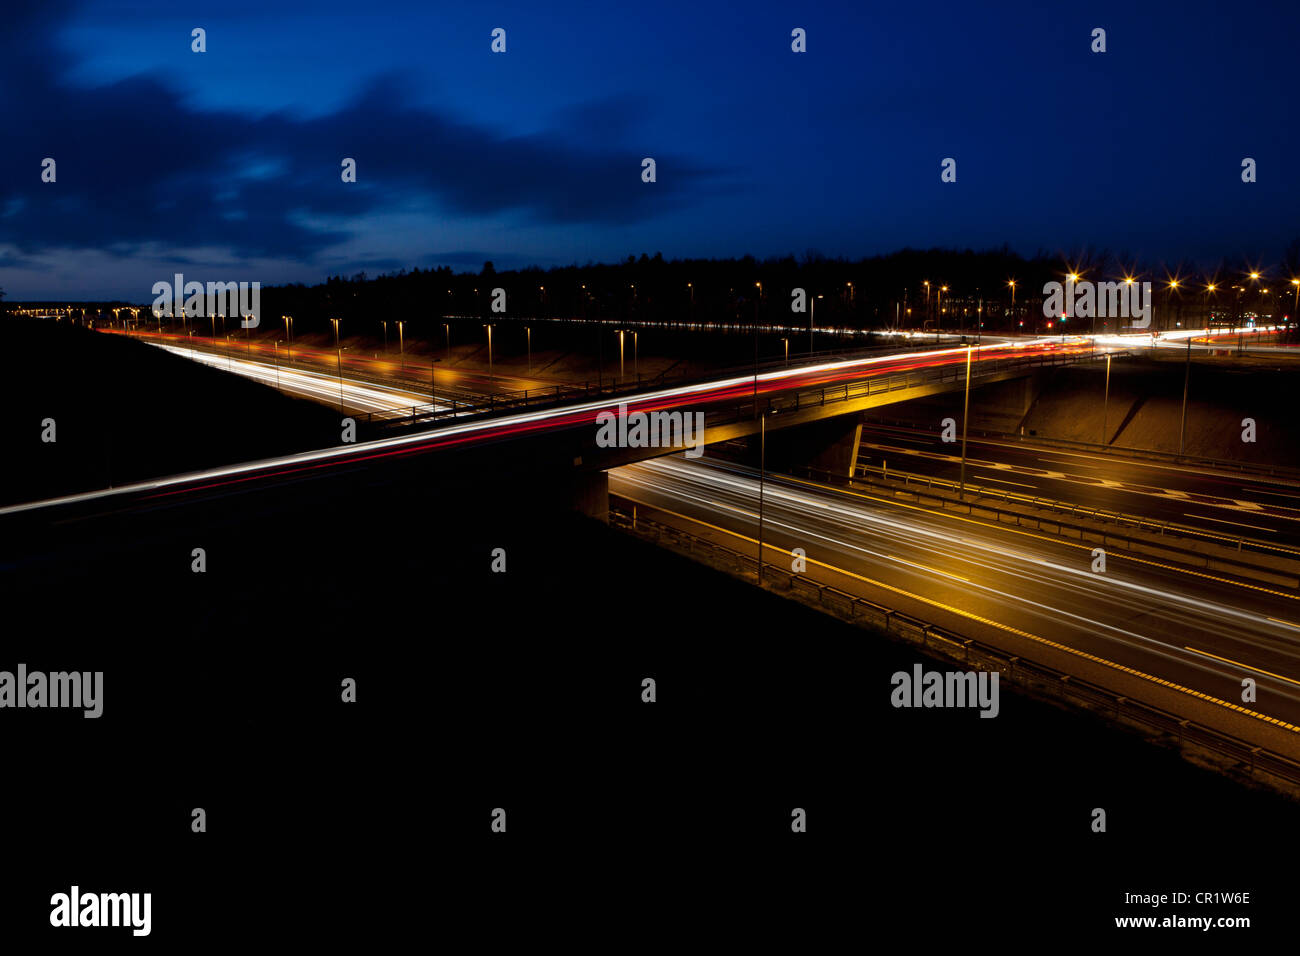 Time lapse view of traffic at night - Stock Image